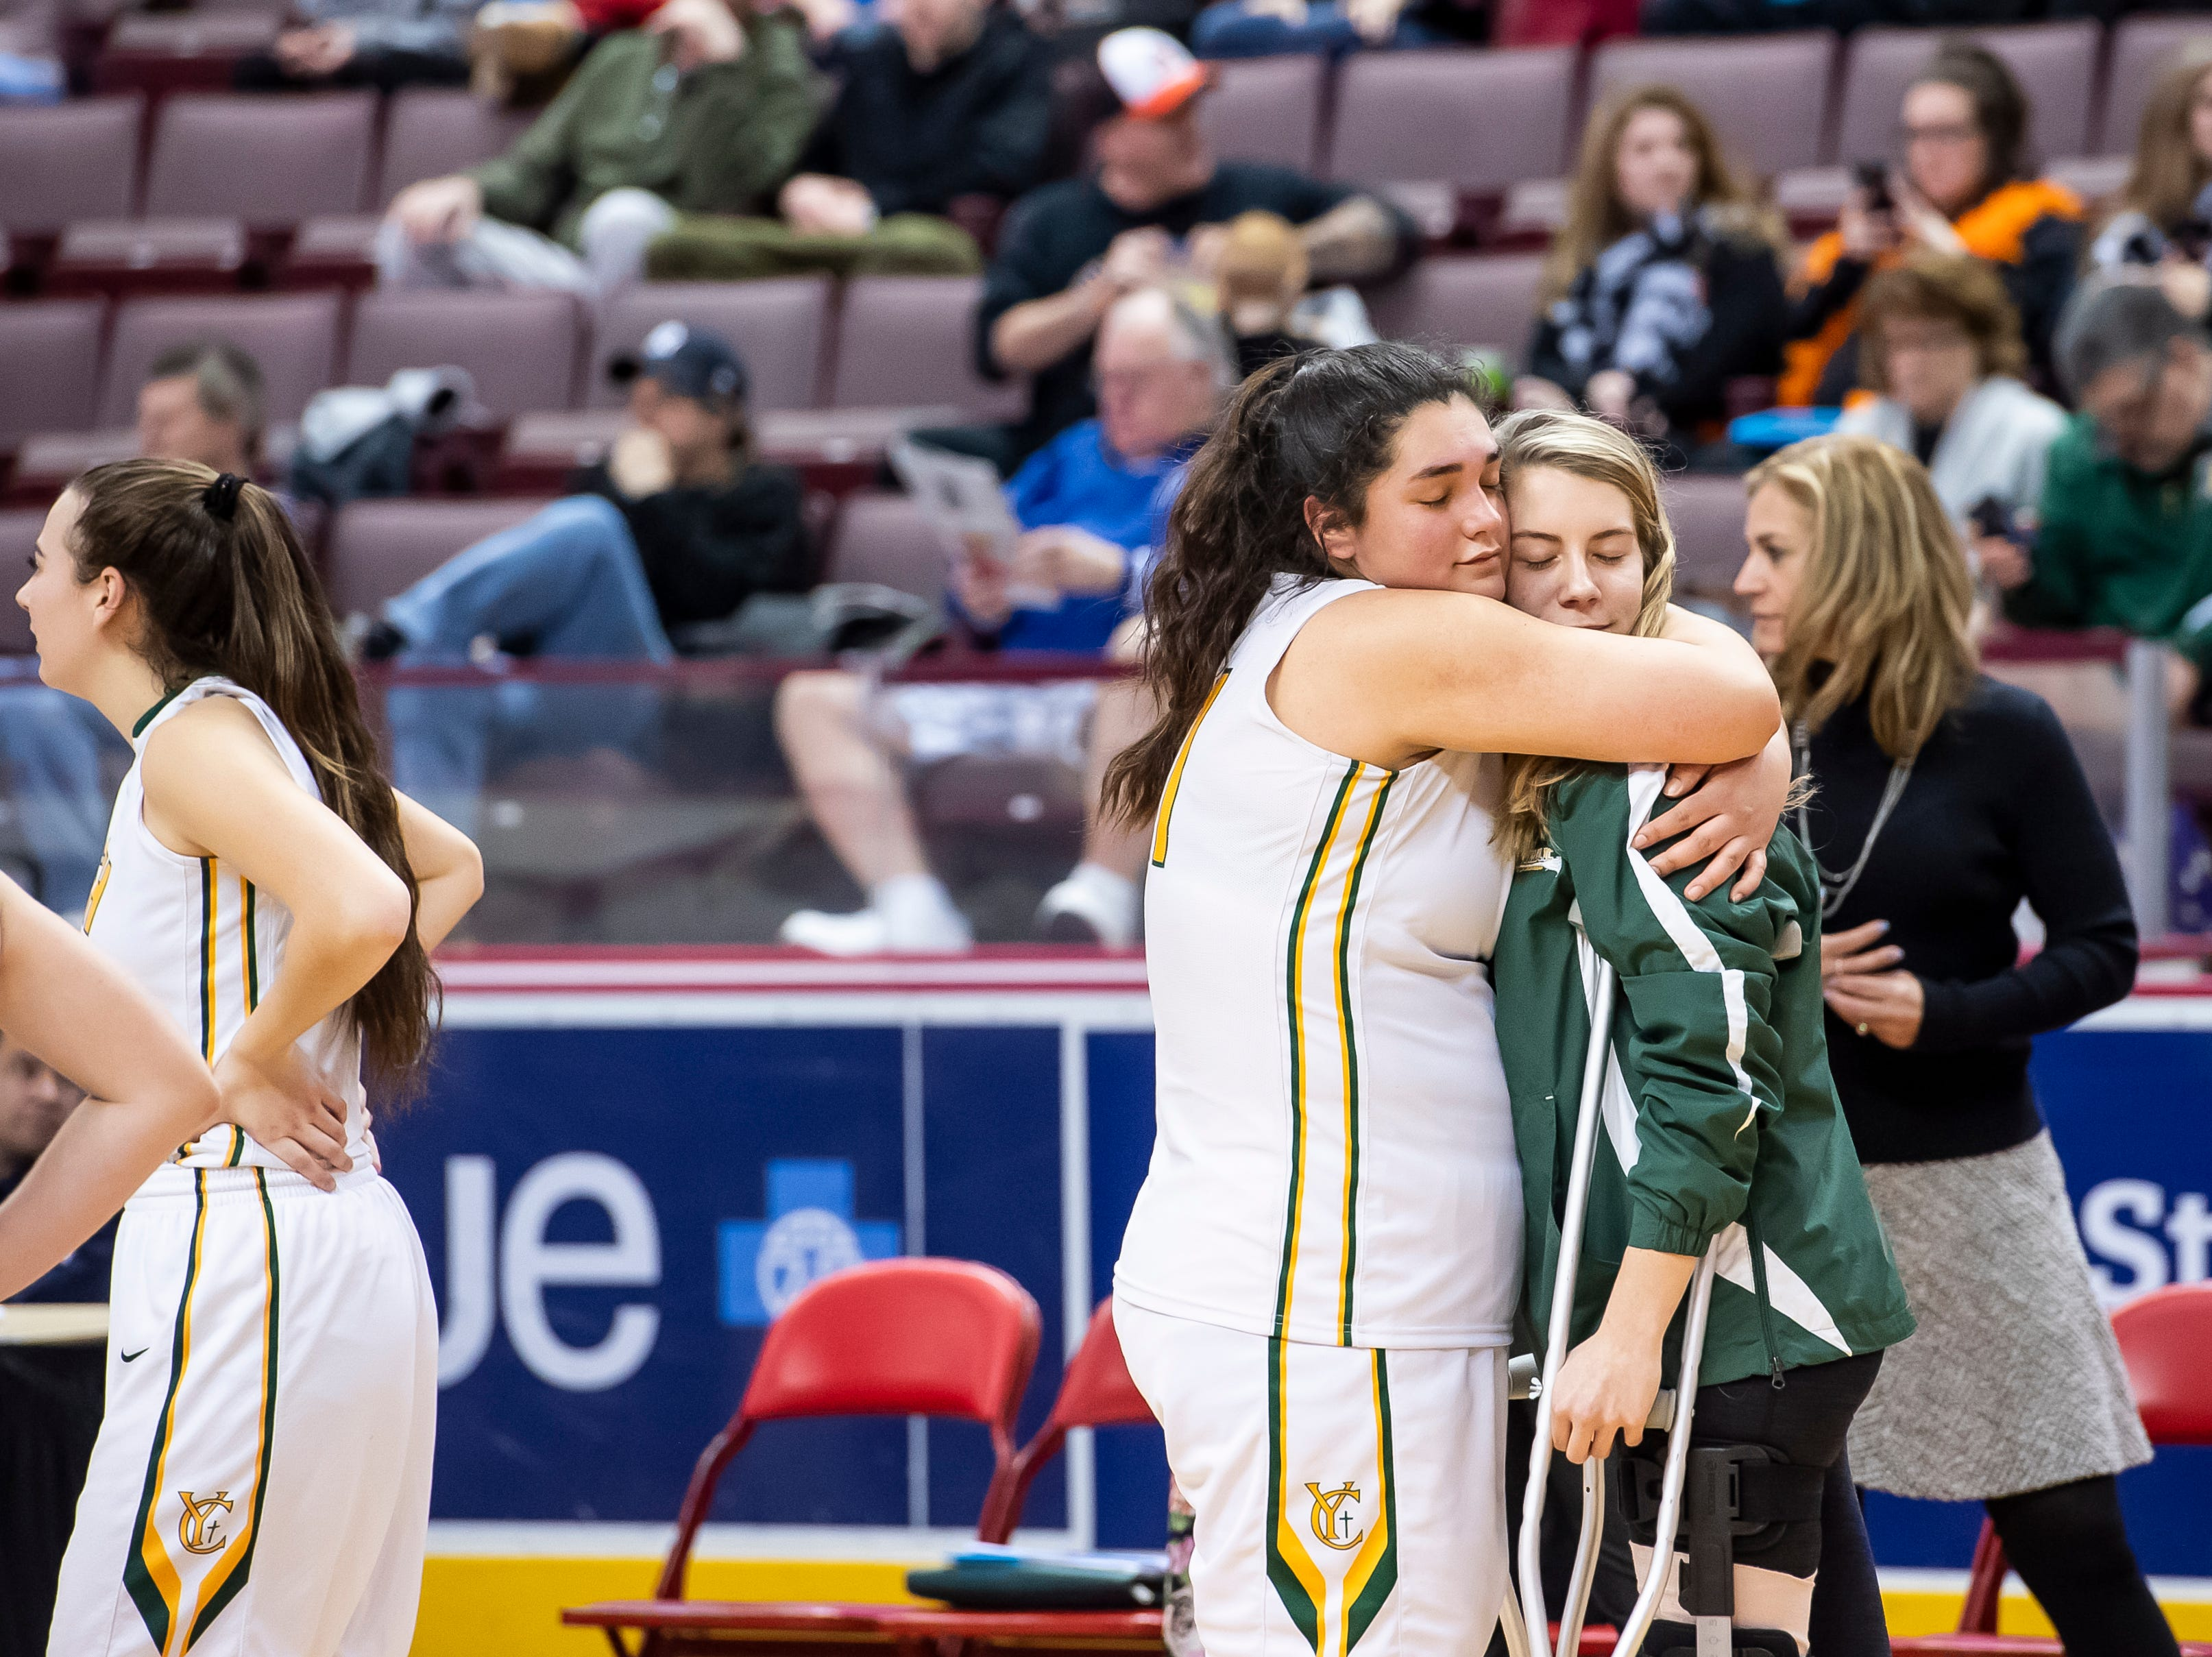 York Catholic's Gabby Coley, left, hugs her teammate Sarah Reed after the Fighting Irish fell in the District 3 2-A girls championship game against Linden Hall at the Giant Center in Hershey Tuesday, Feb. 26, 2019.